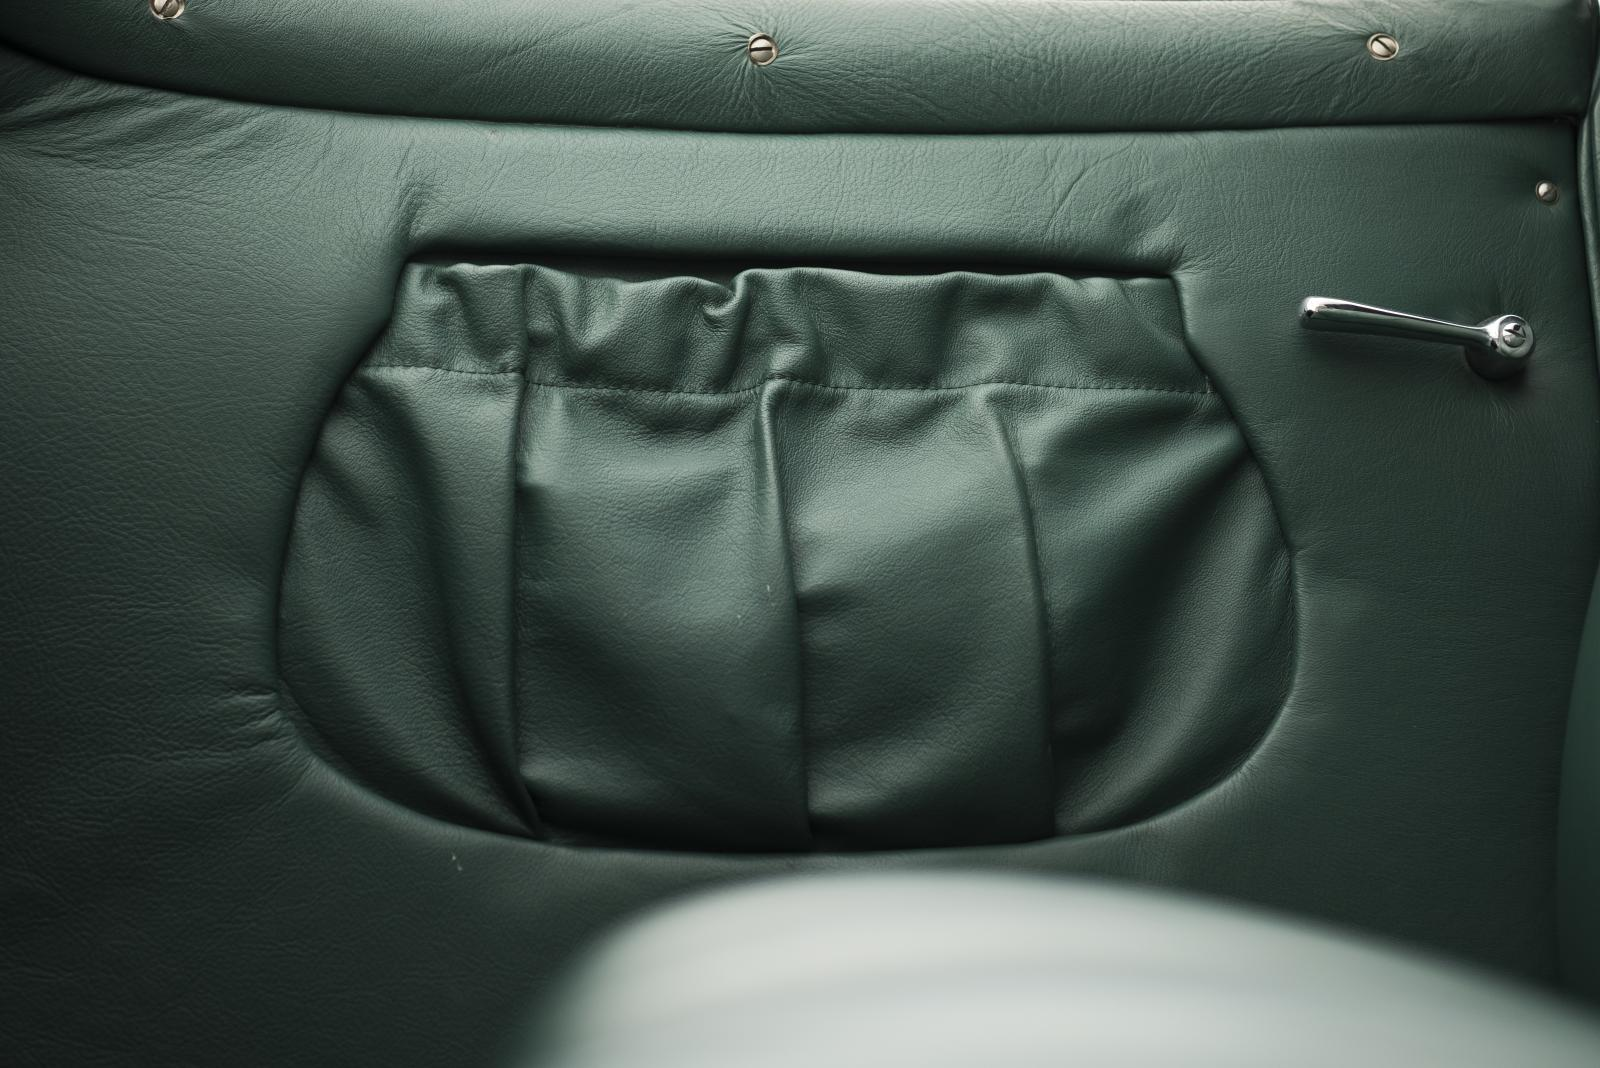 C4G Roadster - Leather Storage